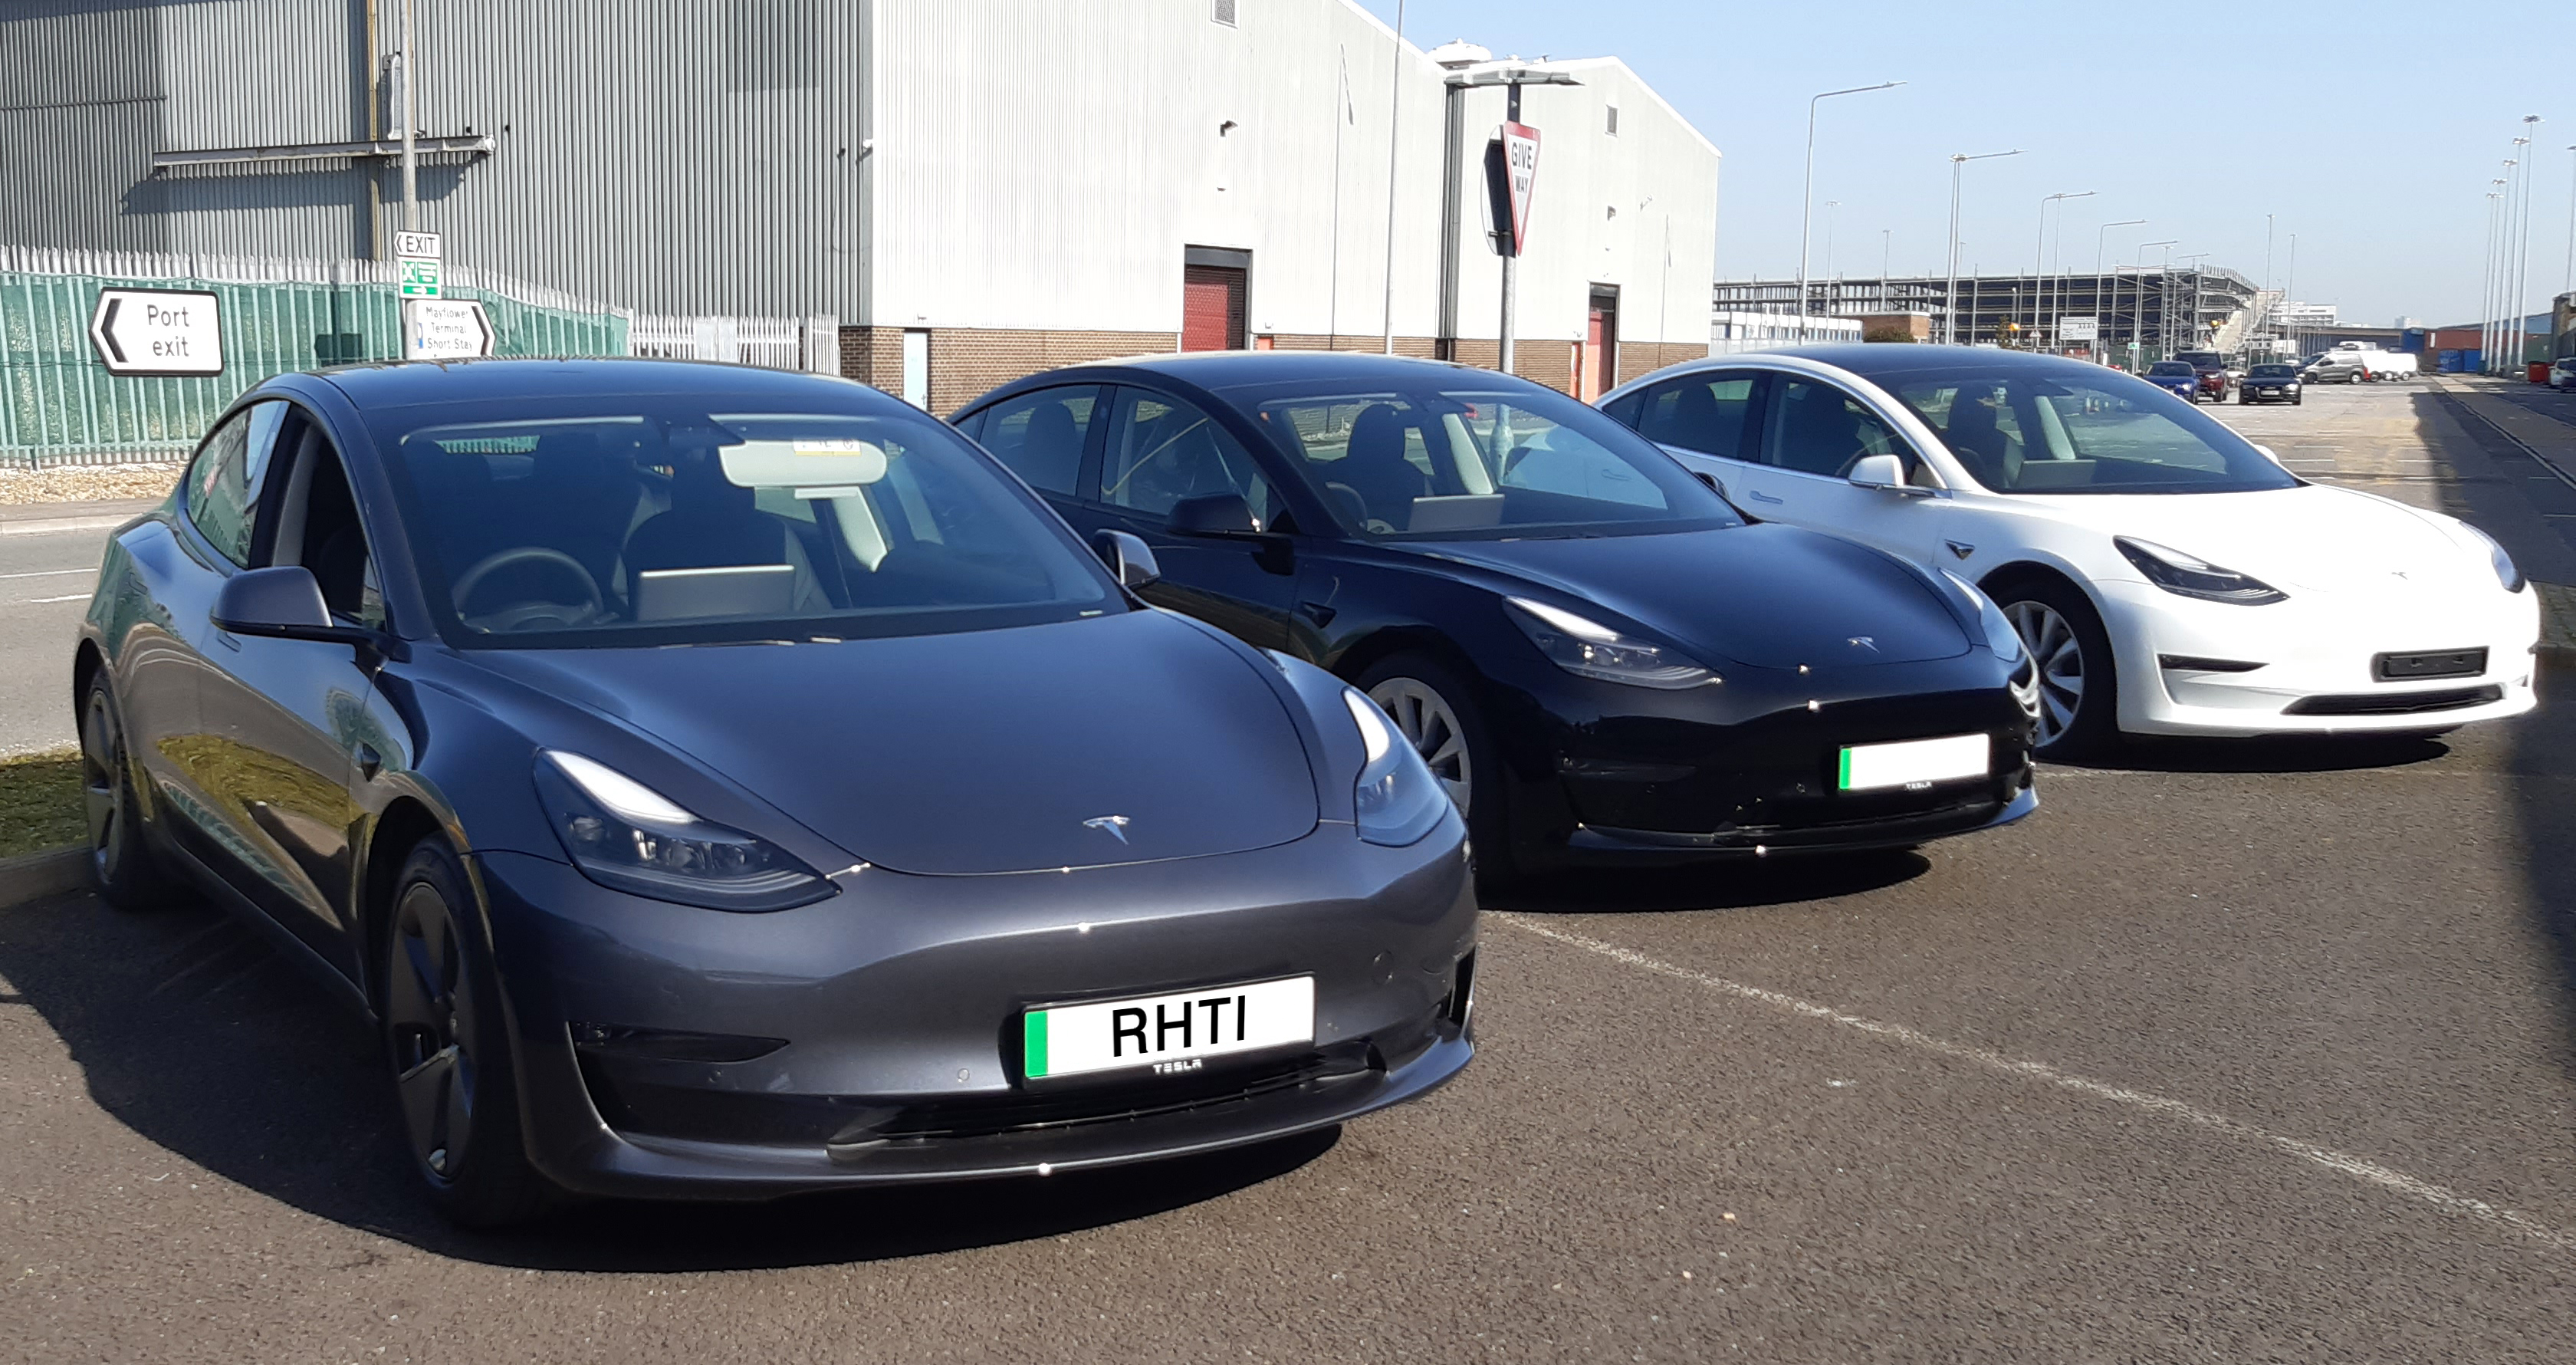 Telsa Model 3 Silver collection from Southampton Docks